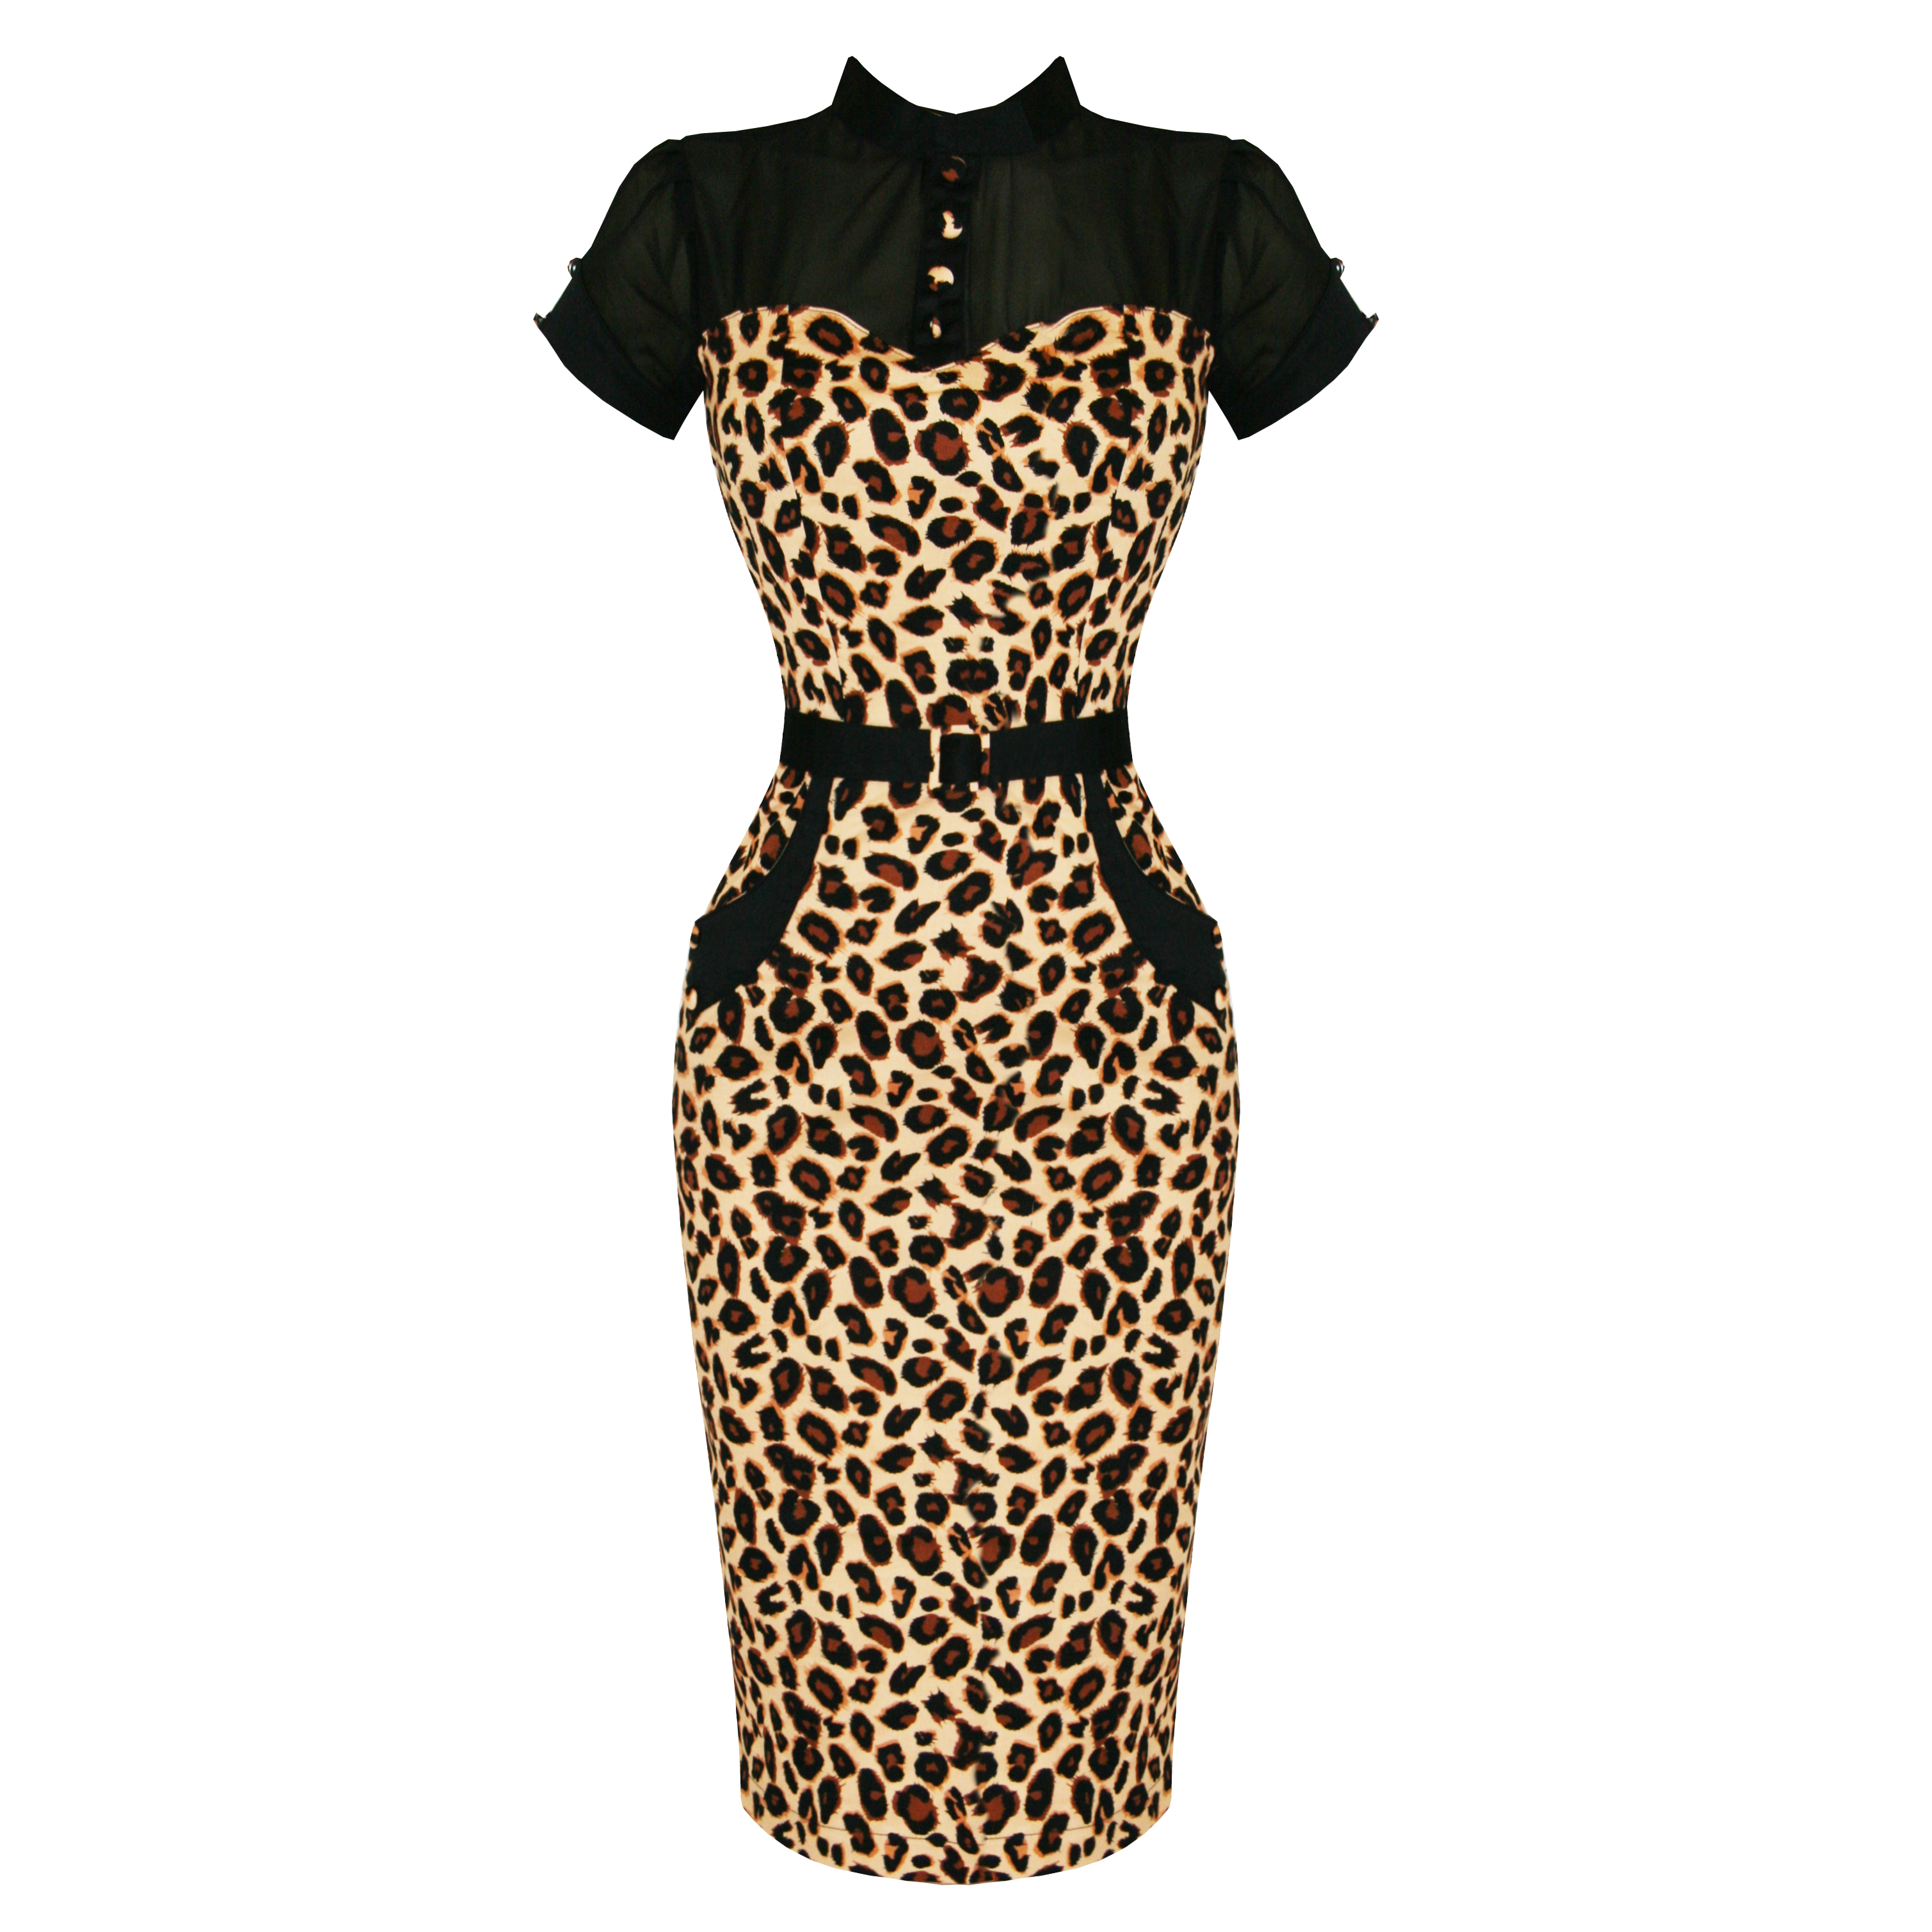 Banned Brown Leopard Rockabilly Pinup Vintage 50s Cocktail Party ...